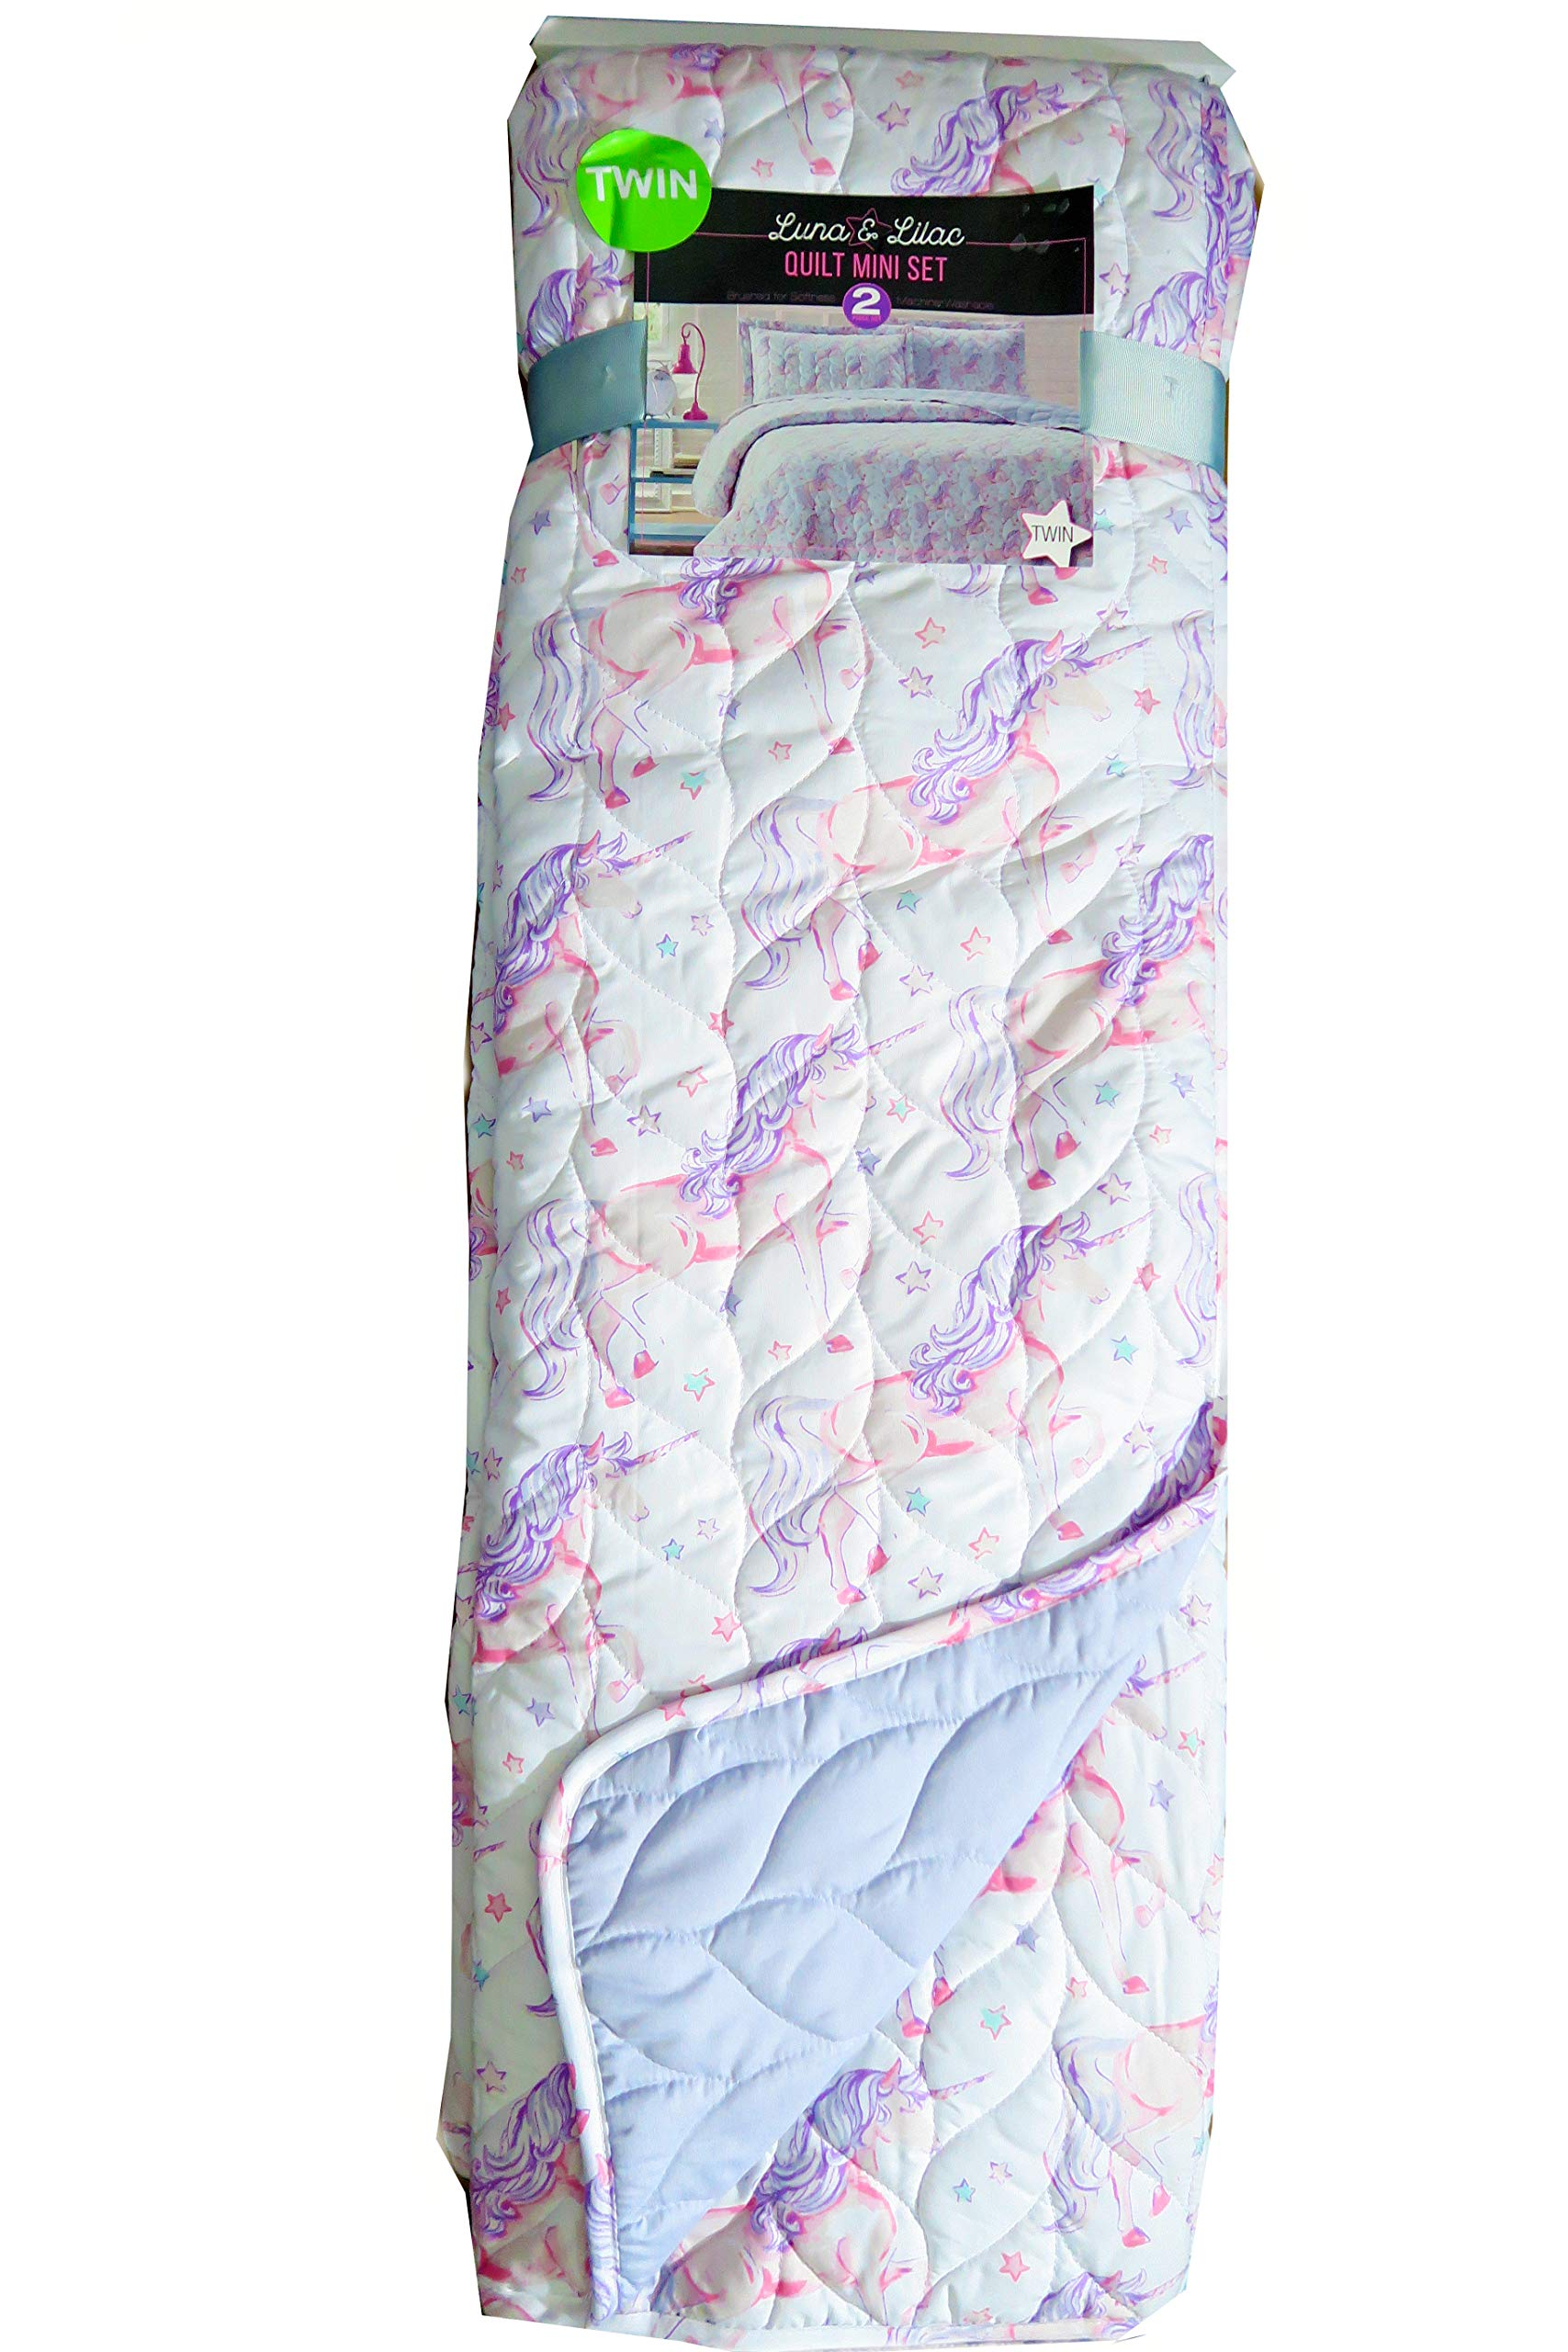 Lila & Lunac Quilt Set Pink Unicorns with Purple Hair On Starry White Background (Twin)